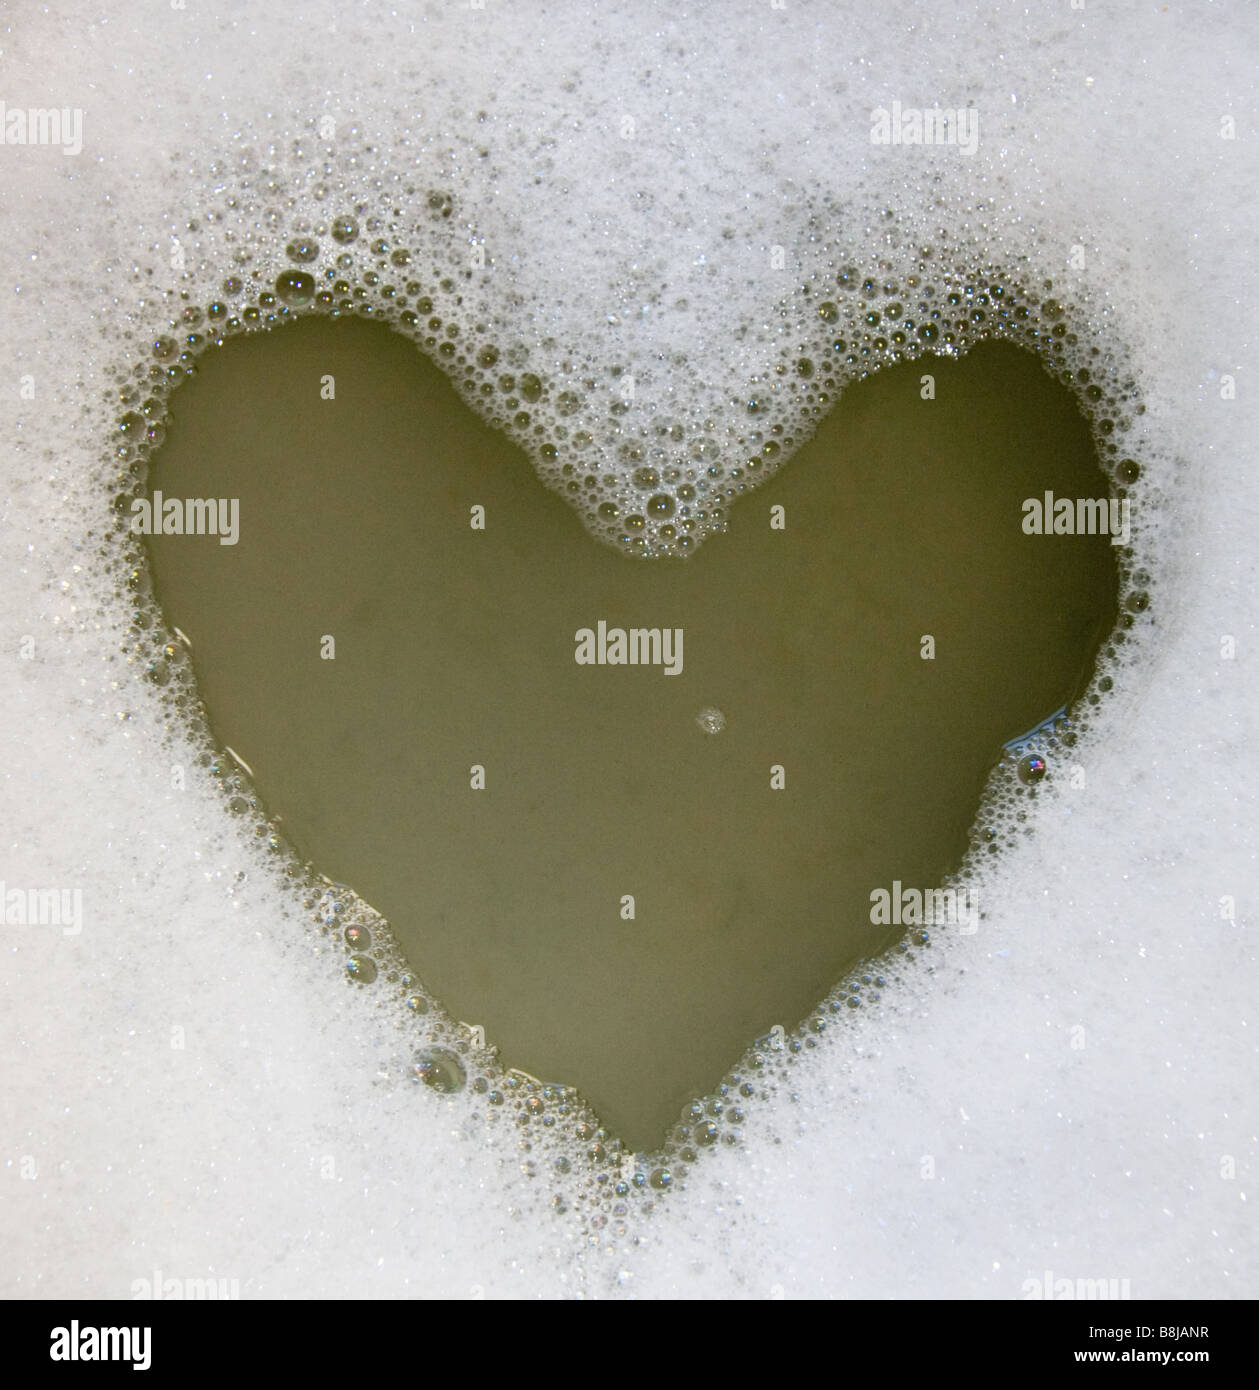 Heart shape in dishwater soapsuds - Stock Image